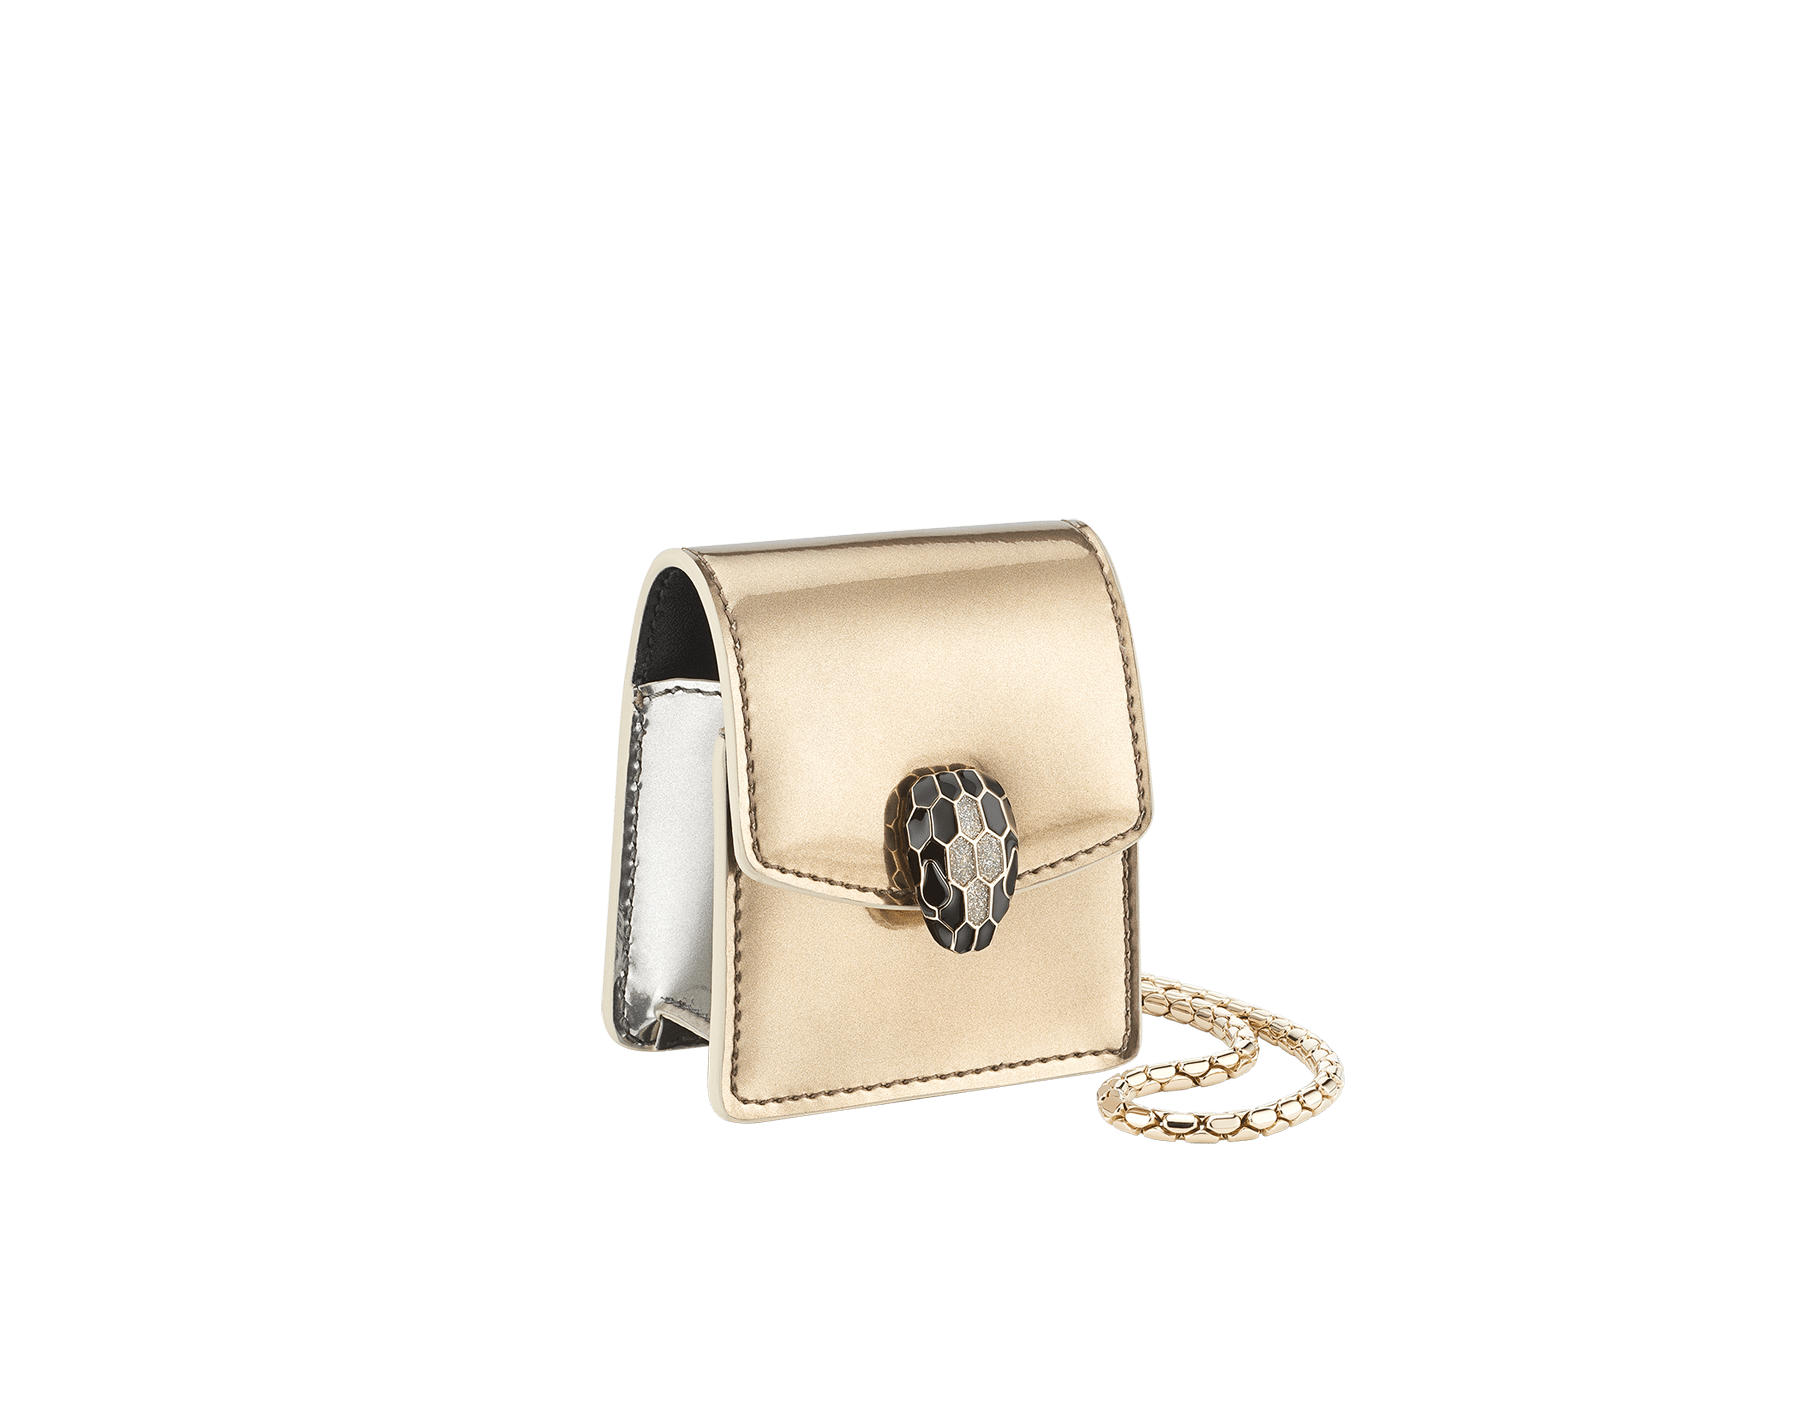 Serpenti Forever Holiday Season AirPods holder in antique bronze and silver brushed metallic calf leather. Snakehead closure in light gold plated brass embellished with black and glitter silver enamel, and black onyx eyes. 289489 image 1